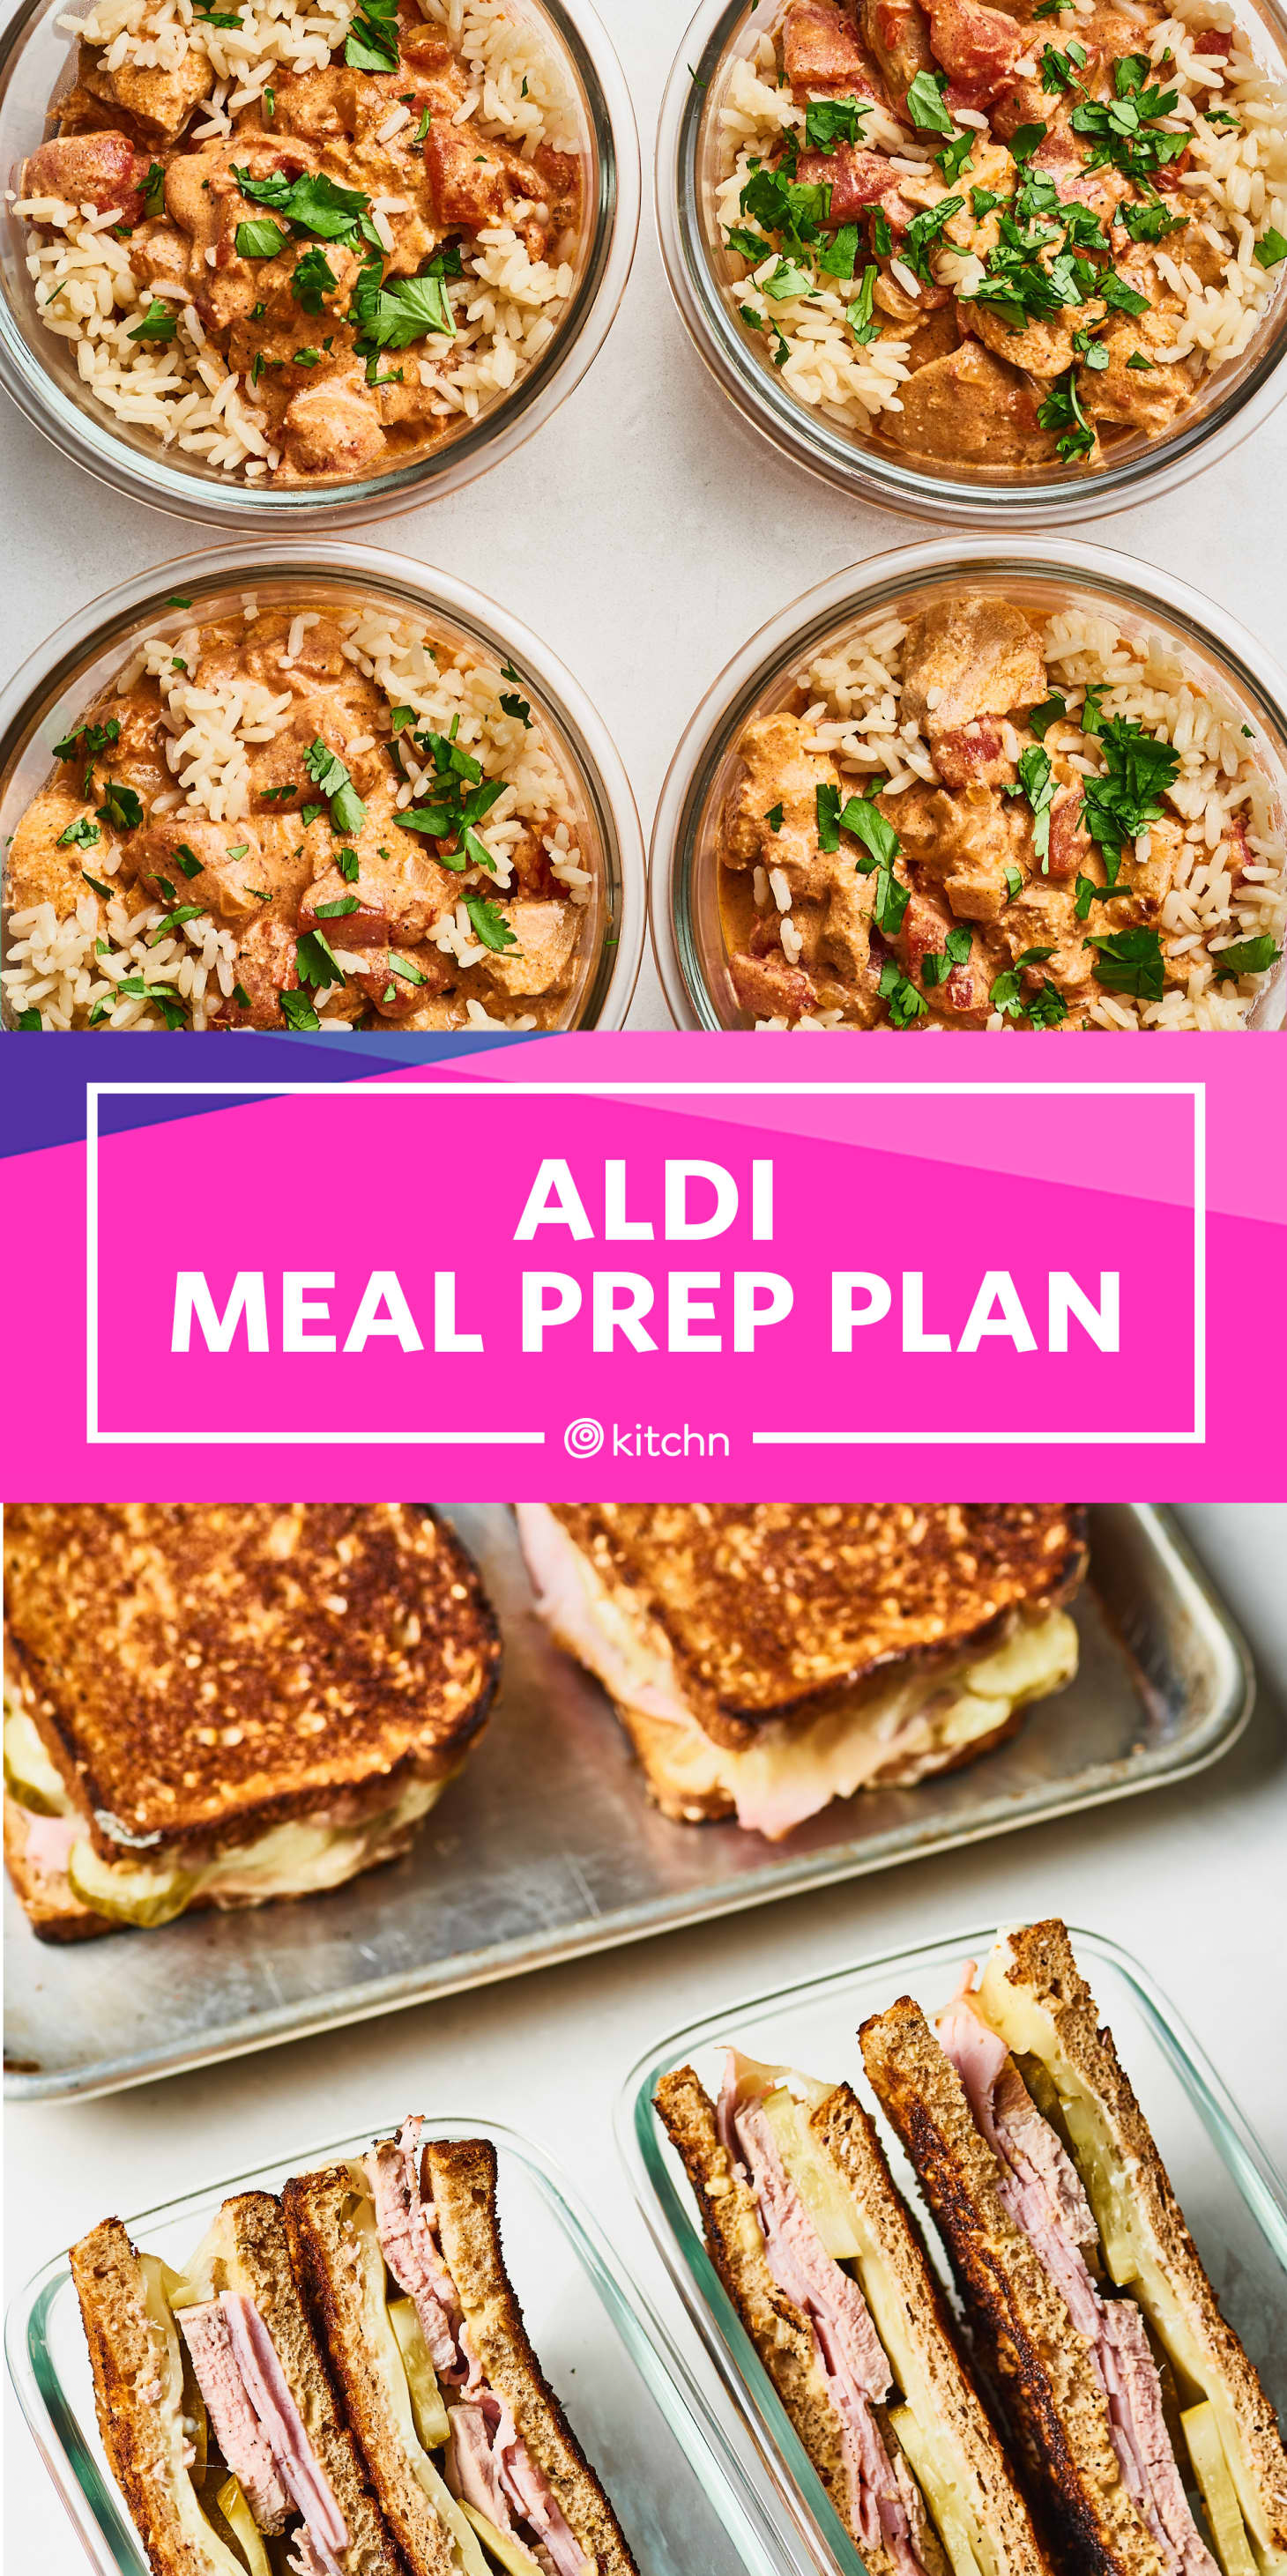 Easy Meal Prep Plan with Aldi Ingredients   Kitchn